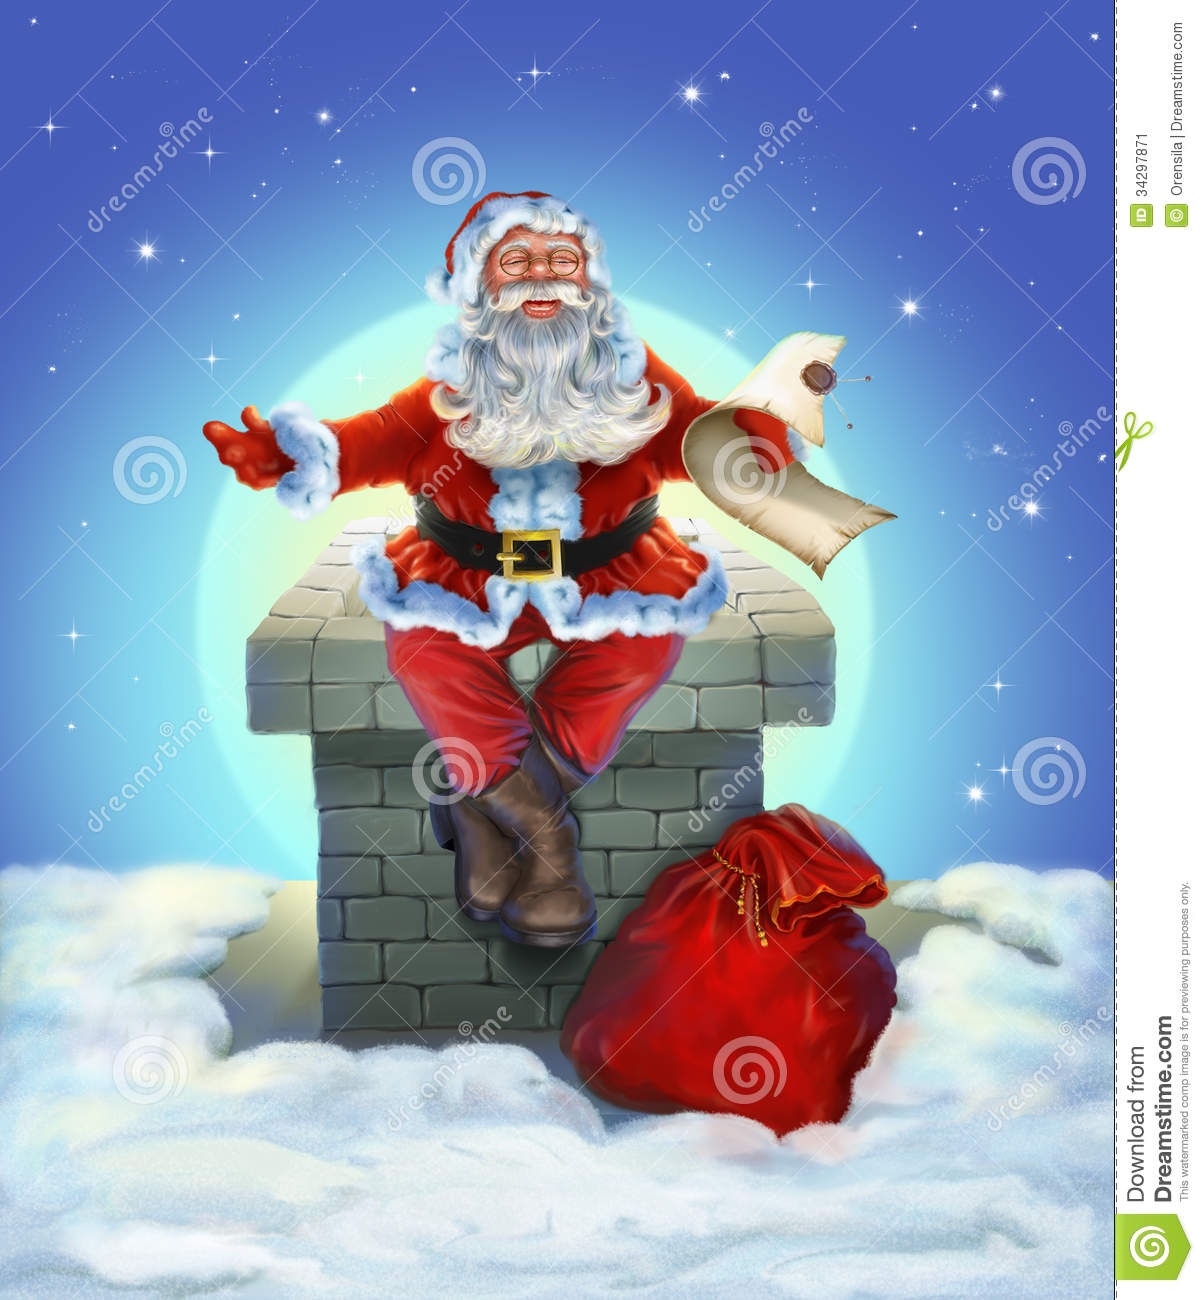 Santa Claus Sitting On The Roof Stock Illustration